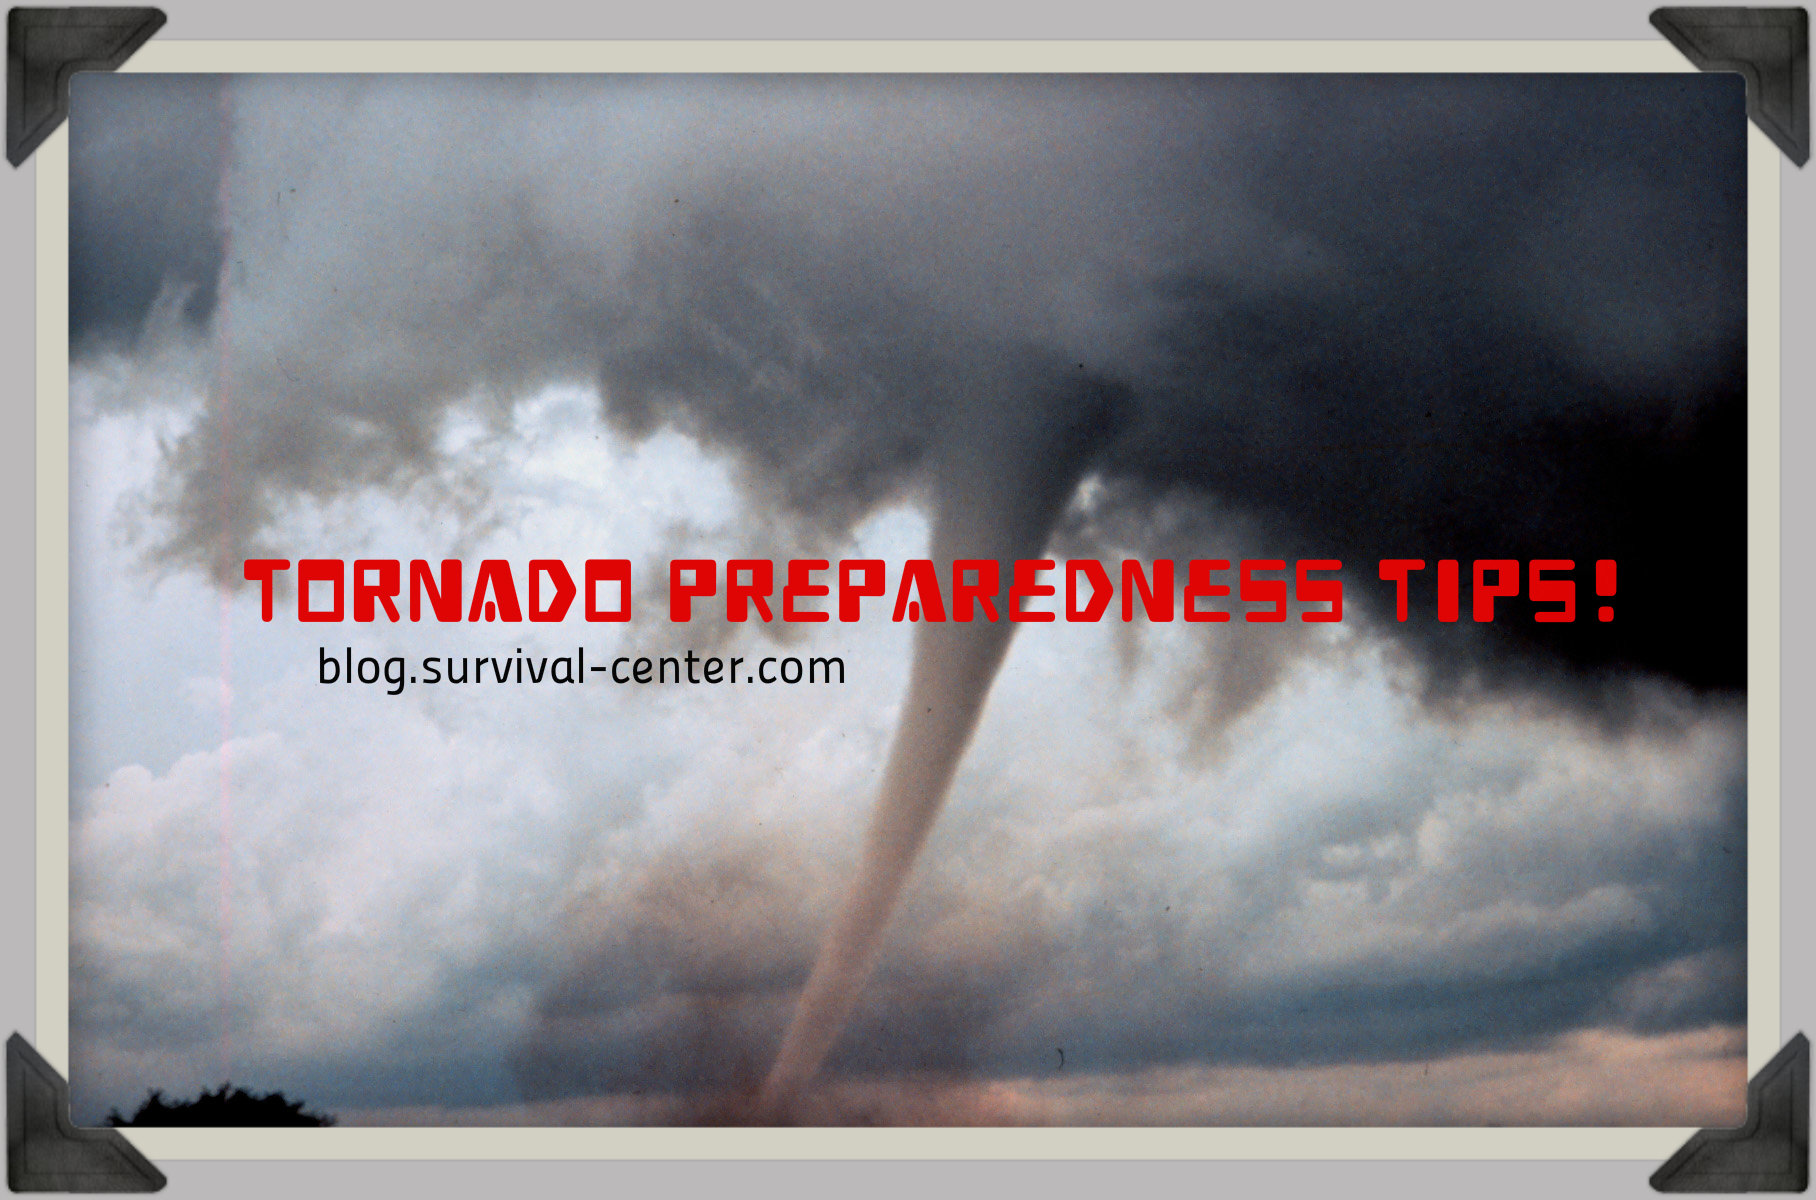 Tornado Preparedness: 11 Crucial Items List